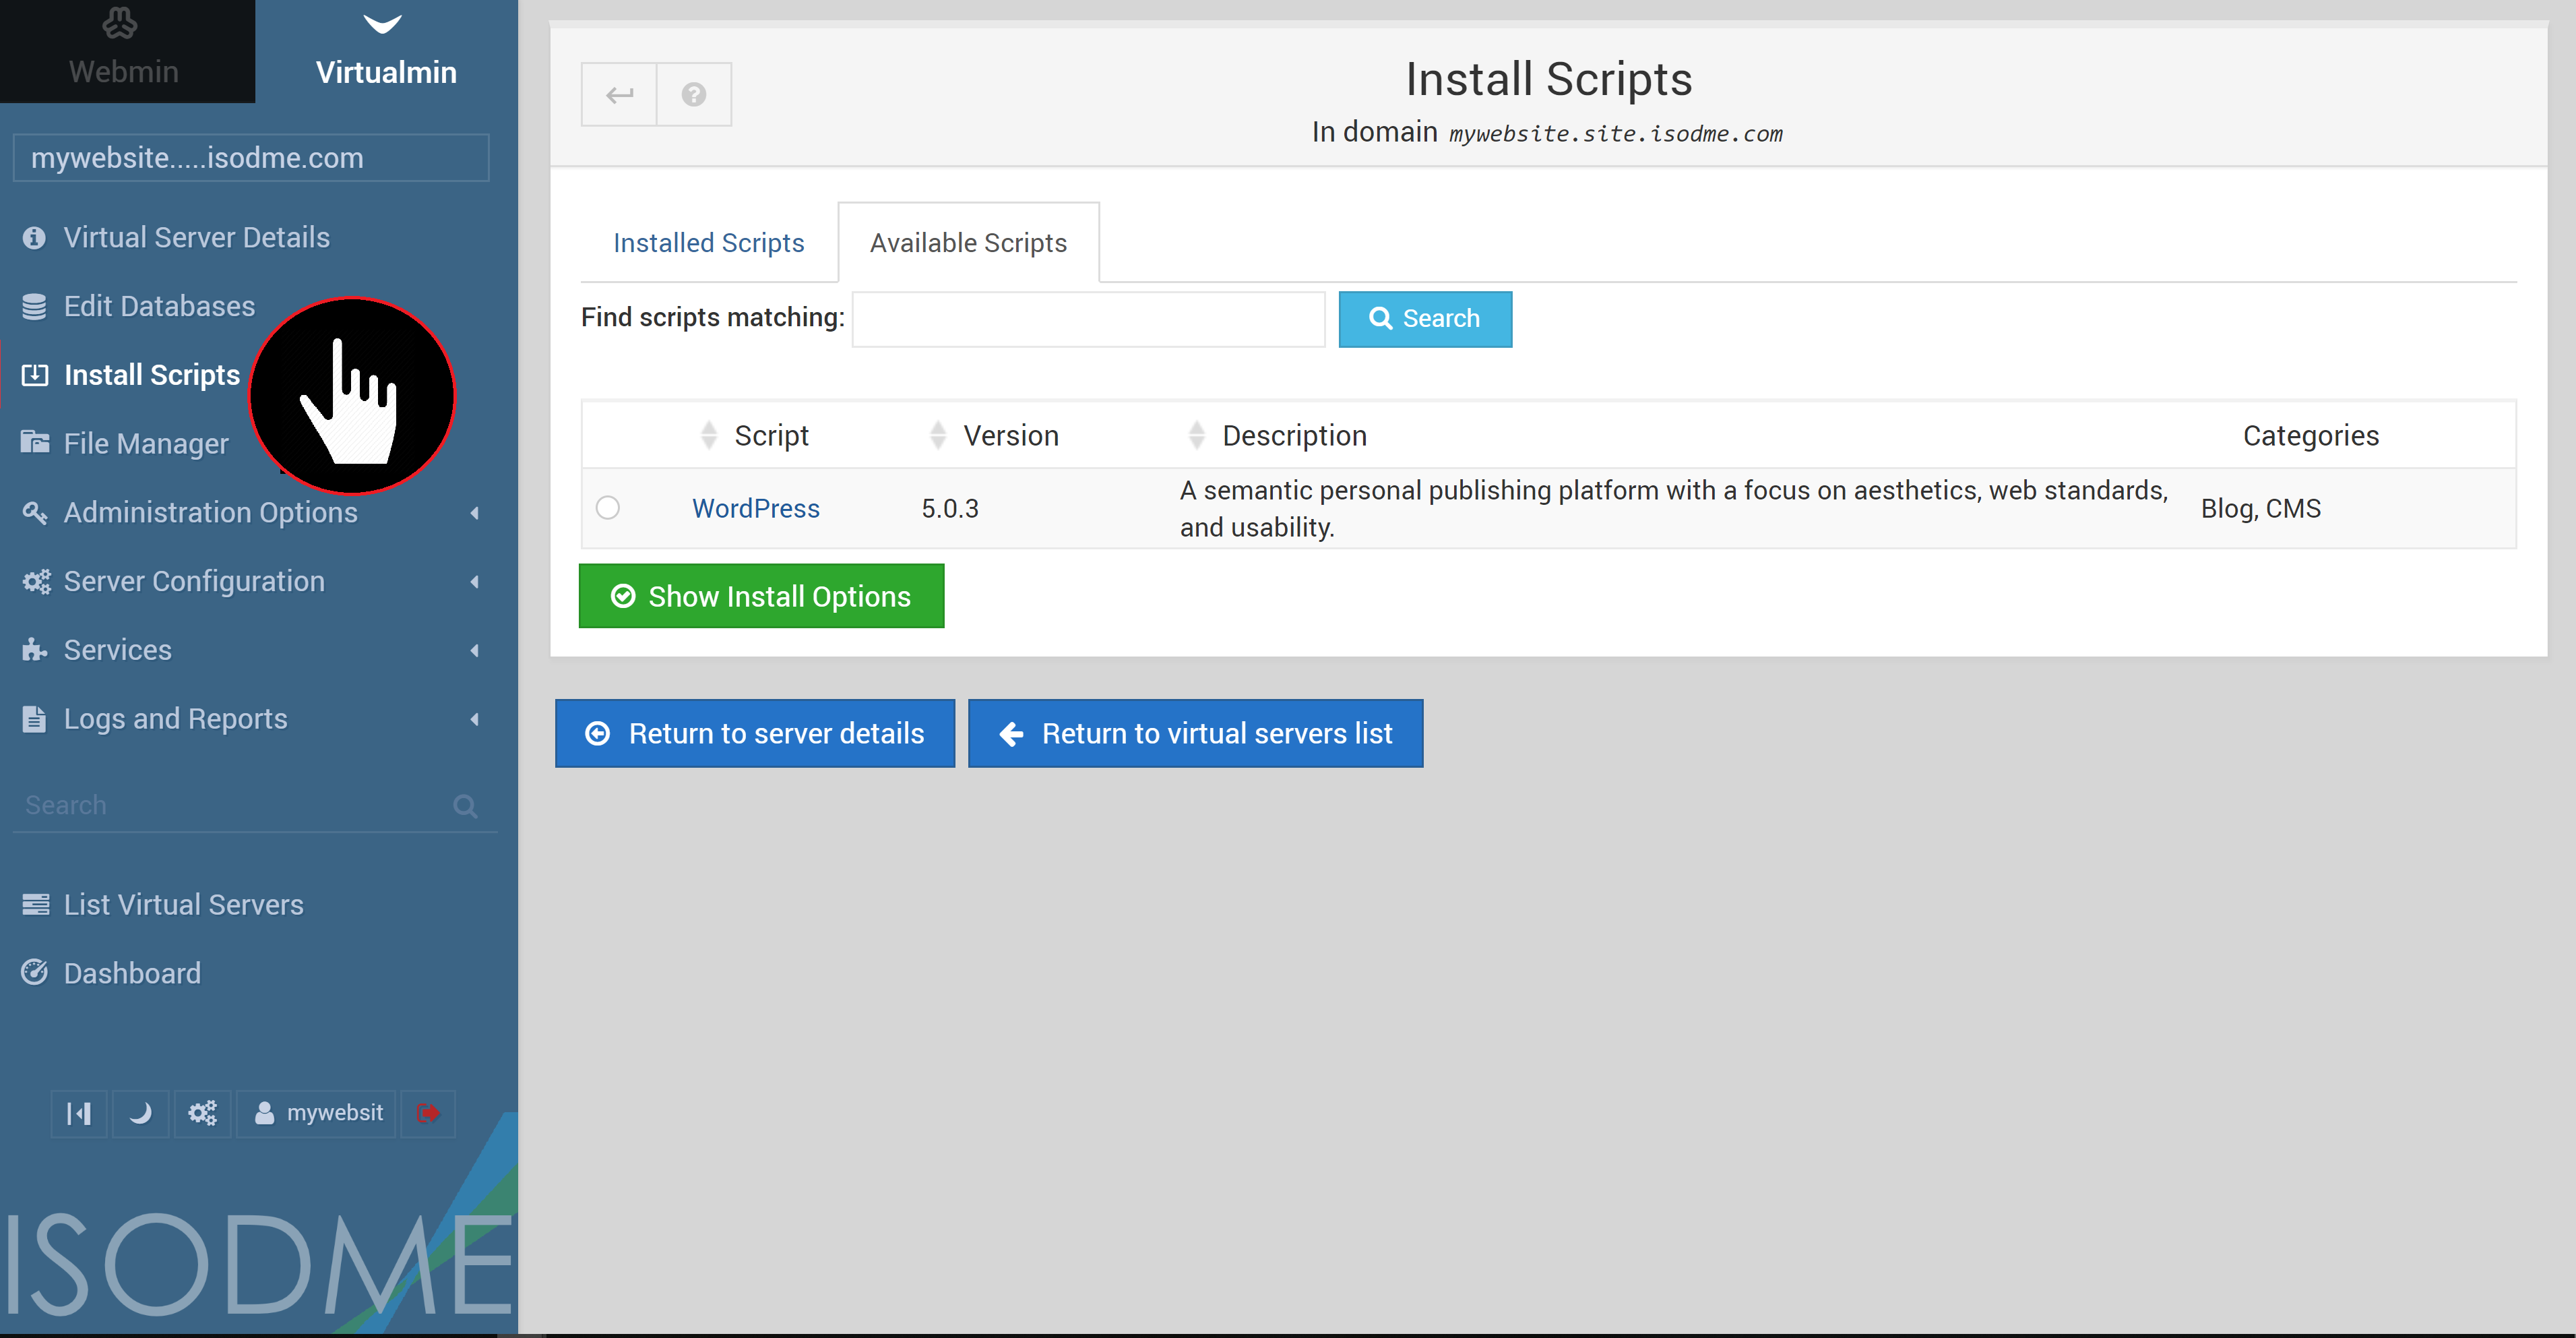 Virtualmin Install Scripts Page